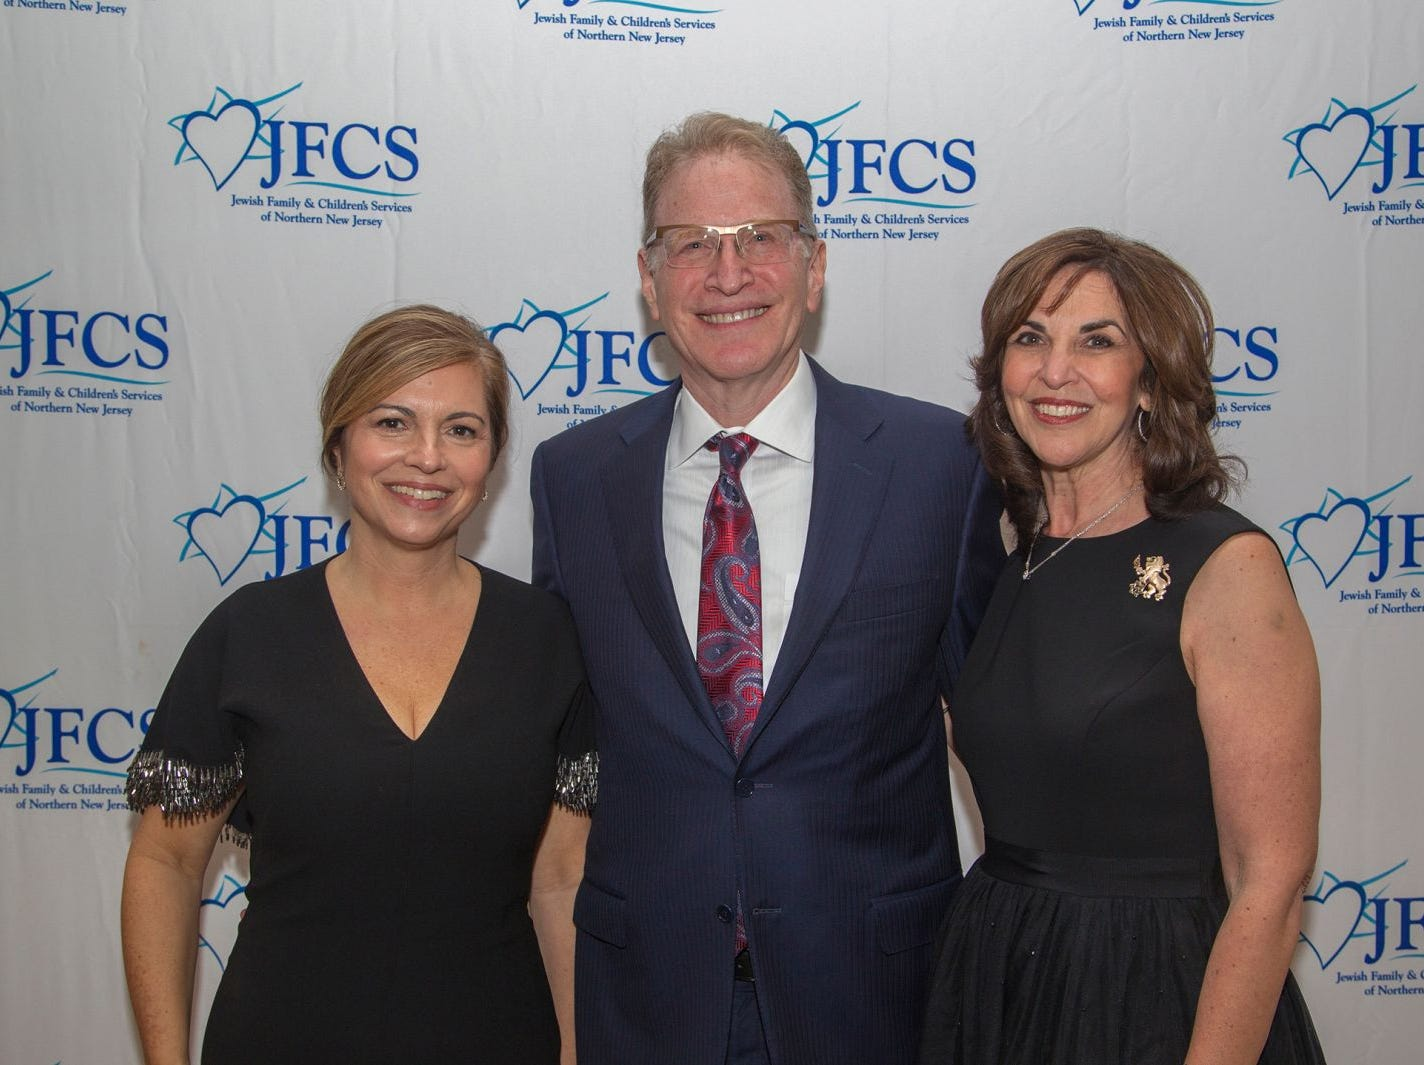 Honorees - Shira Feverstein, Alan Scharfstein, Jayne Petak. Jewish Family & Children's Services of Northern New Jersey held its annual gala at the Edgewood Country Club in River Vale. The evening honored Shira Feuerstein, Jayne Petak, and Alan Scharfstein for their leadership, support, and dedication. 11/18/2018